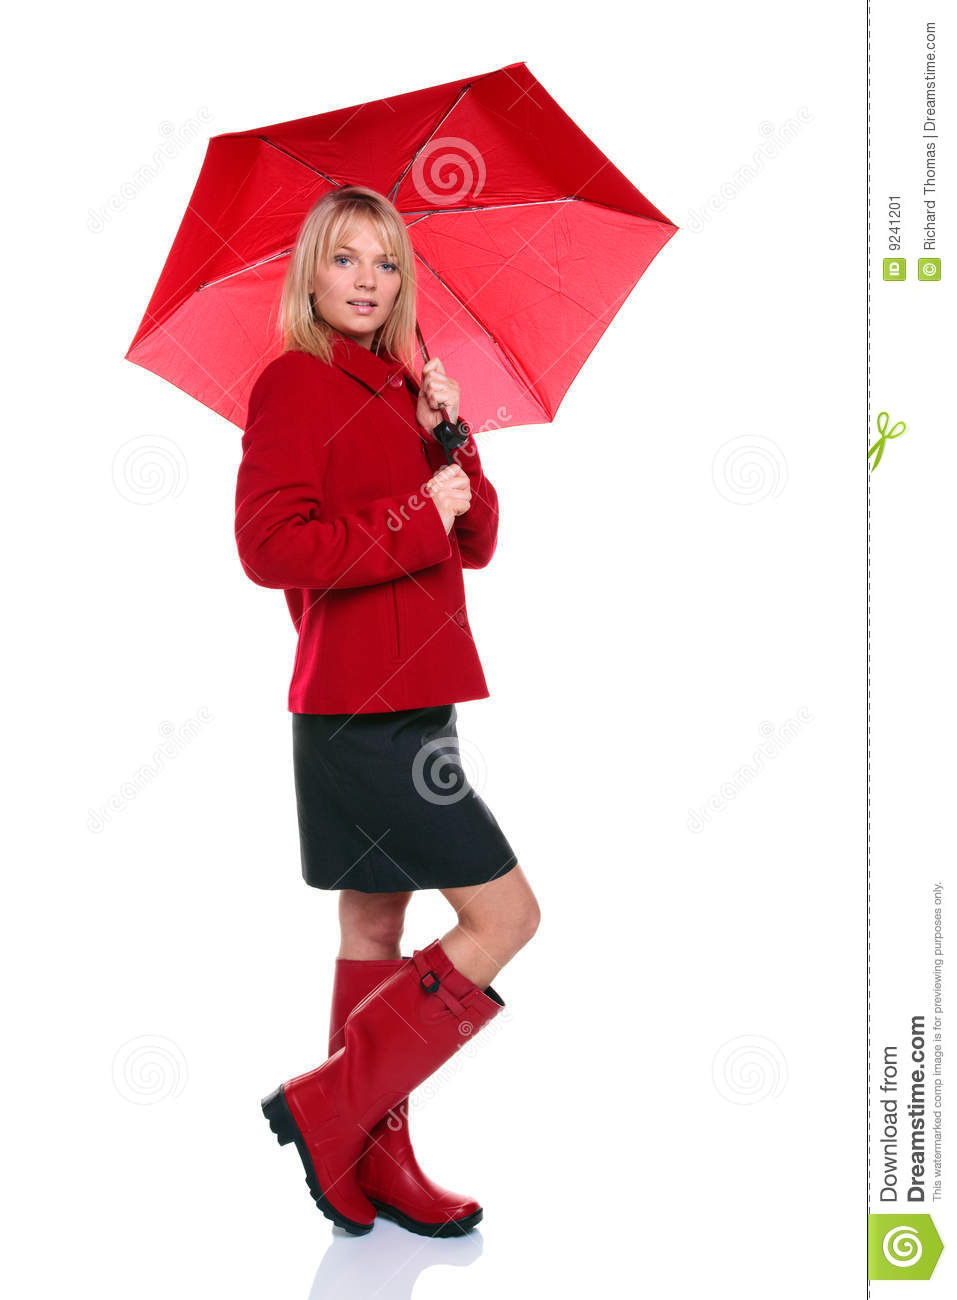 Woman In Red Coat Boots And Umbrella Stock Image - Image: 9241201